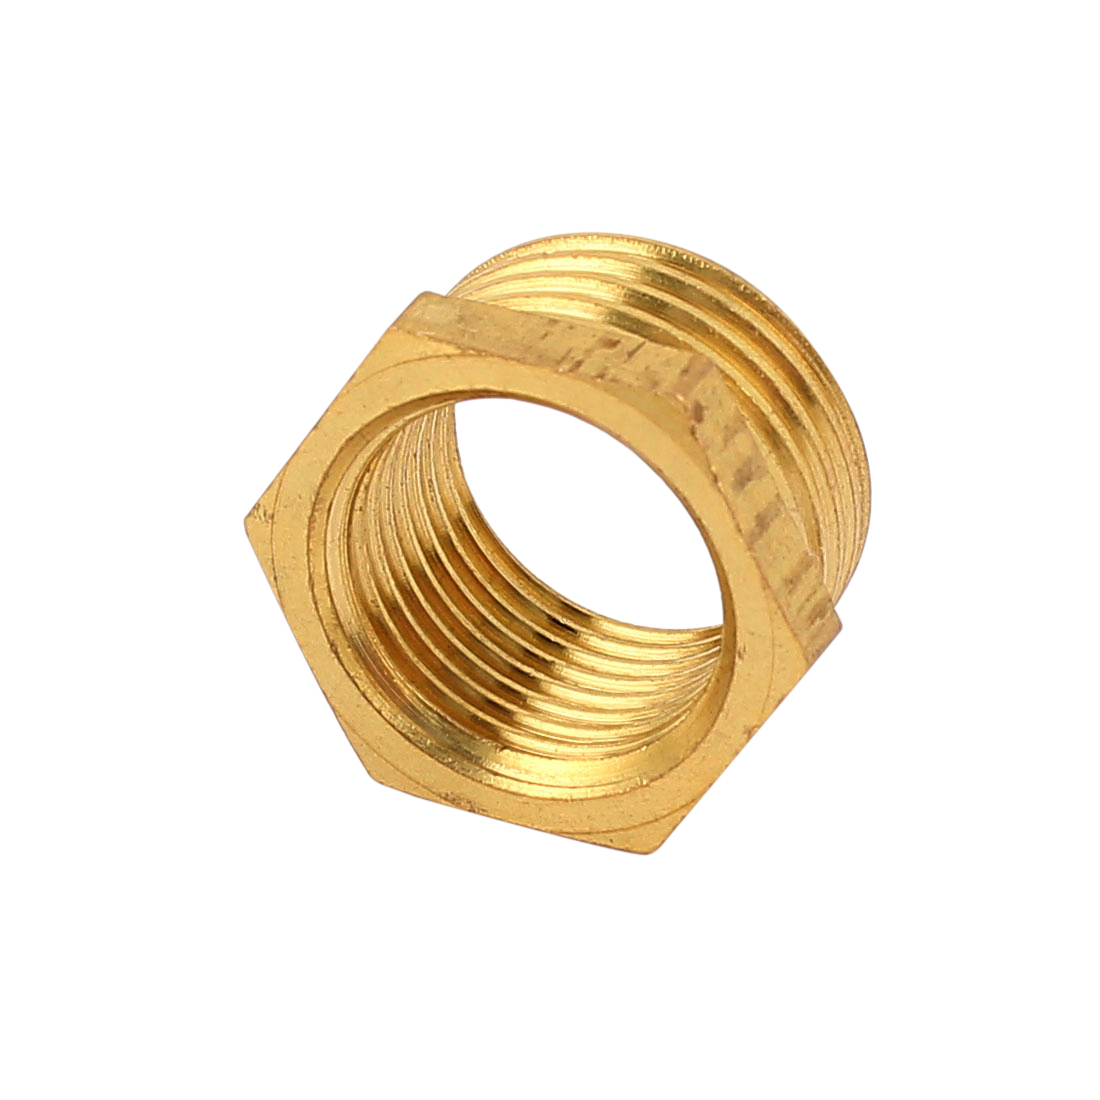 1/2BSP x 3/8BSP Male to Female Thread Brass Hex Reducing Bushing Adapter Pipe Fitting